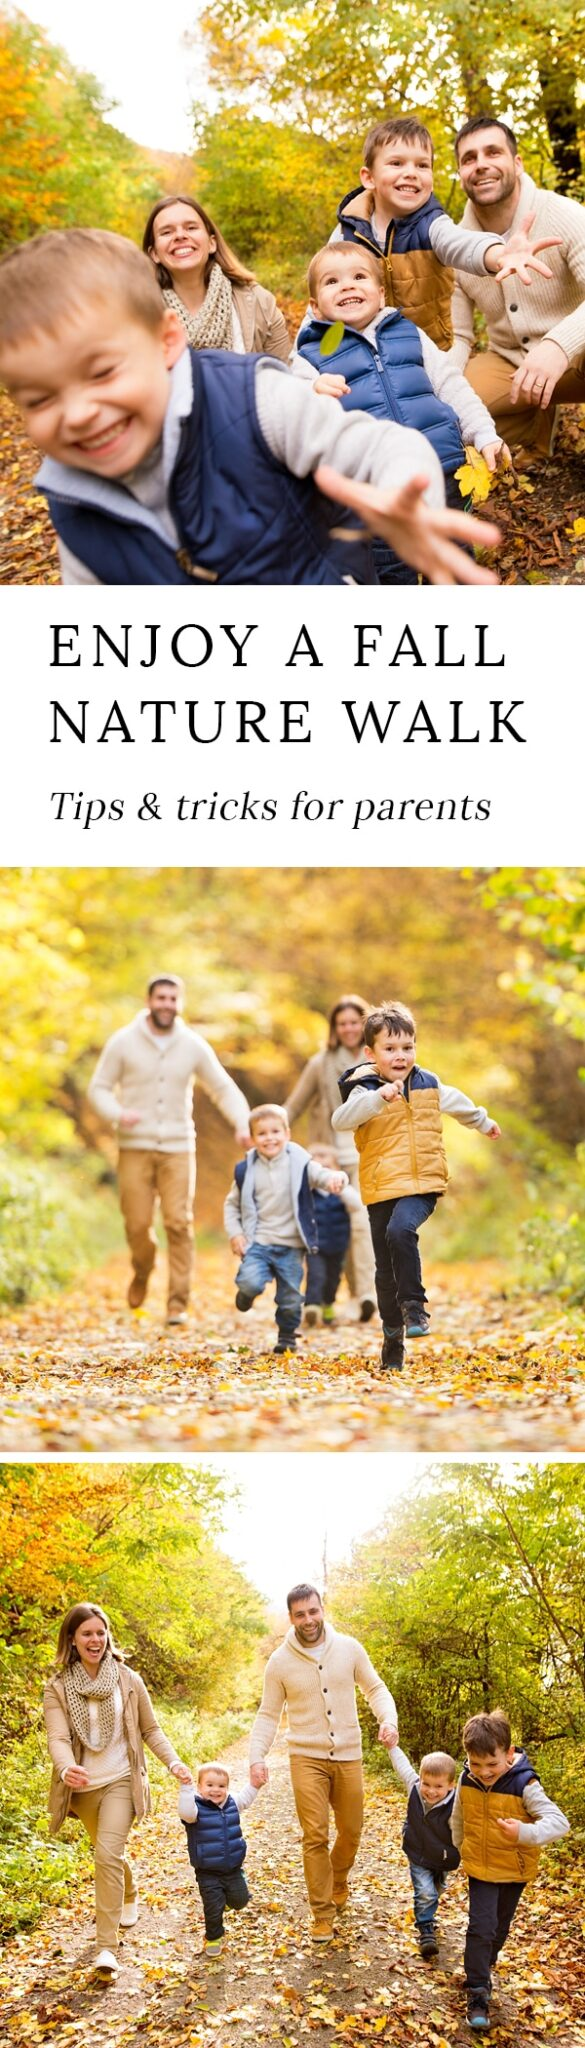 Spending time outside is important for a child's physical and mental health. Here are the best tips and tricks for enjoying nature walks with kids.